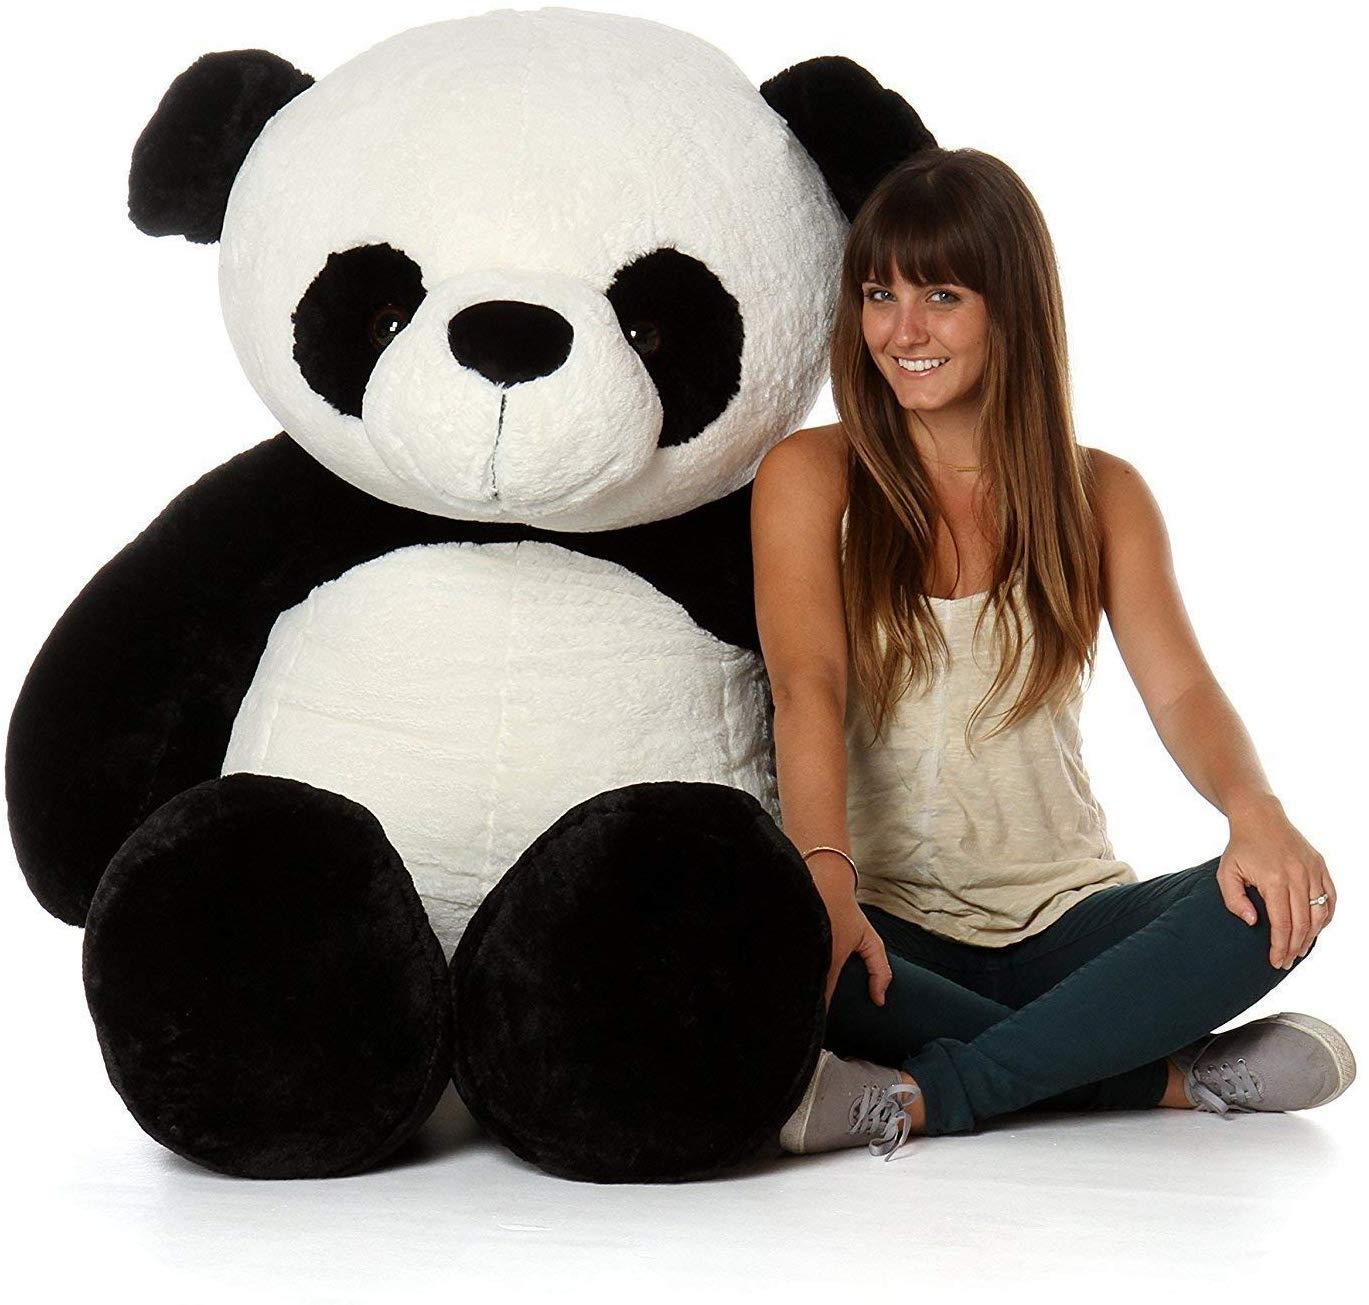 Anxiety Stuffed Animal, Buy Click4deal Giant Stuffed Spongy Huggable Cute Panda Teddy Bear 3 Feet Online At Low Prices In India Amazon In